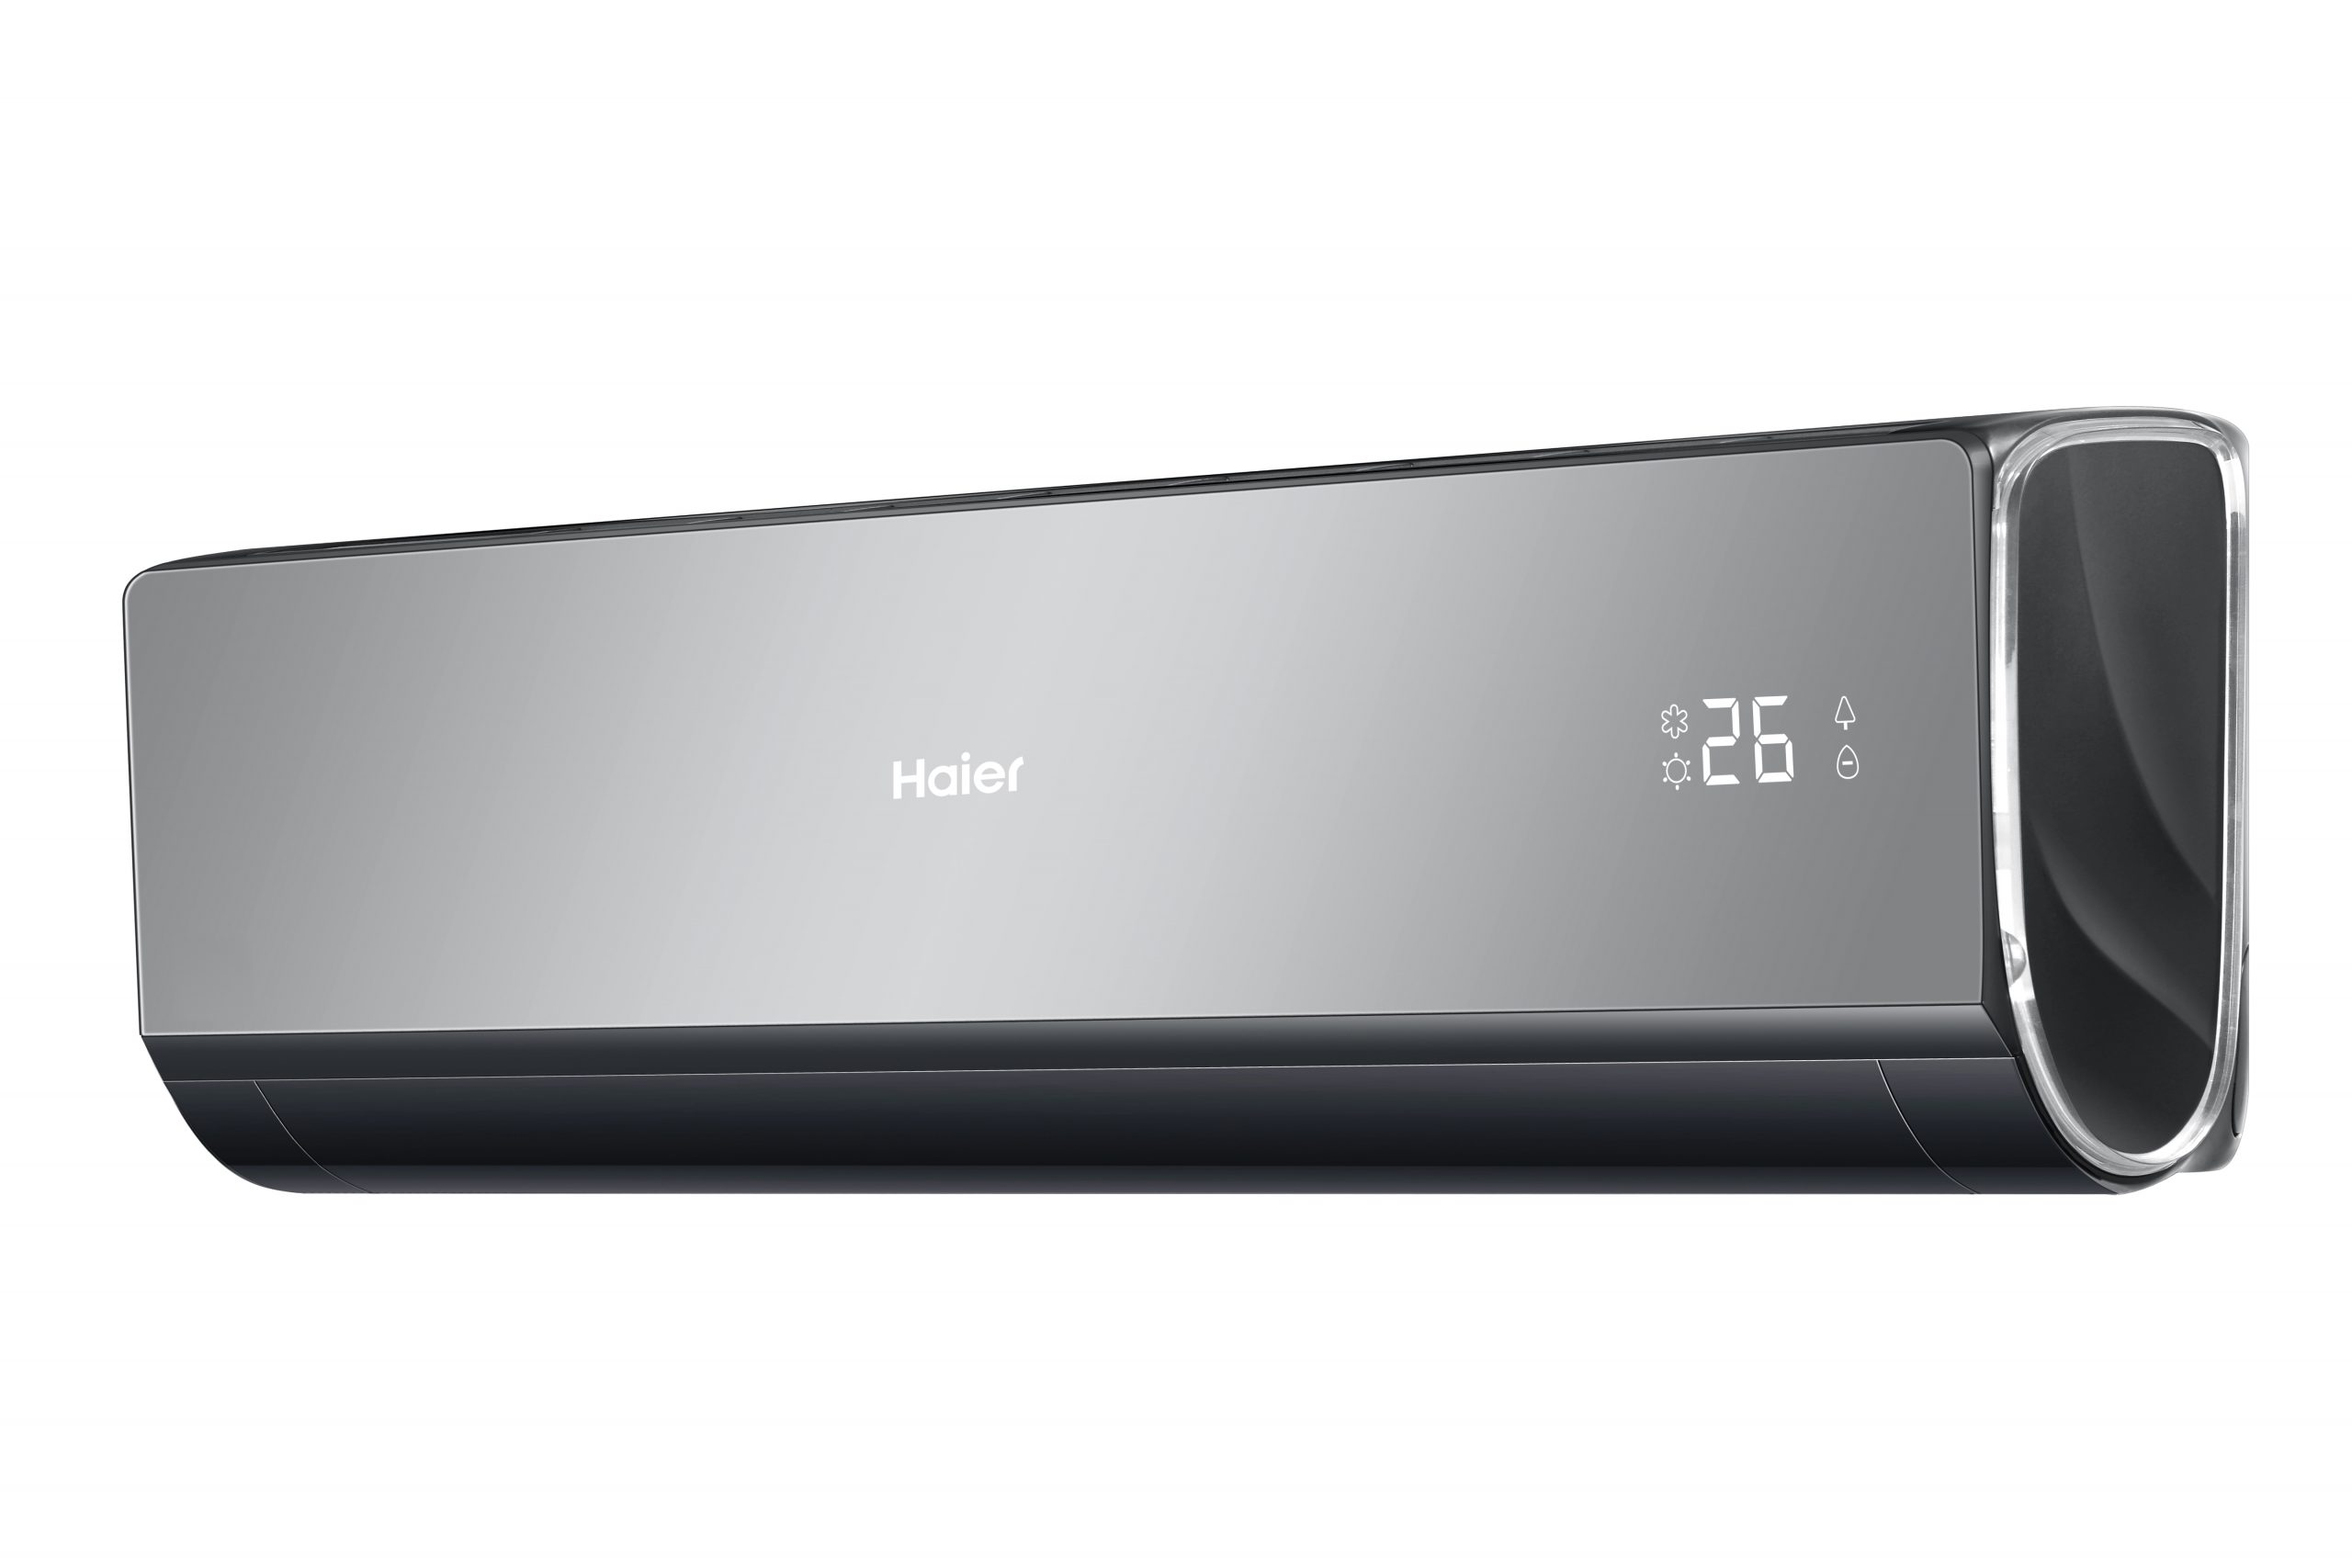 2. Haier сплит-система настенный AS12NS4ERA-B/1U12BS3ERA (серия Lightera DC-Inverter)